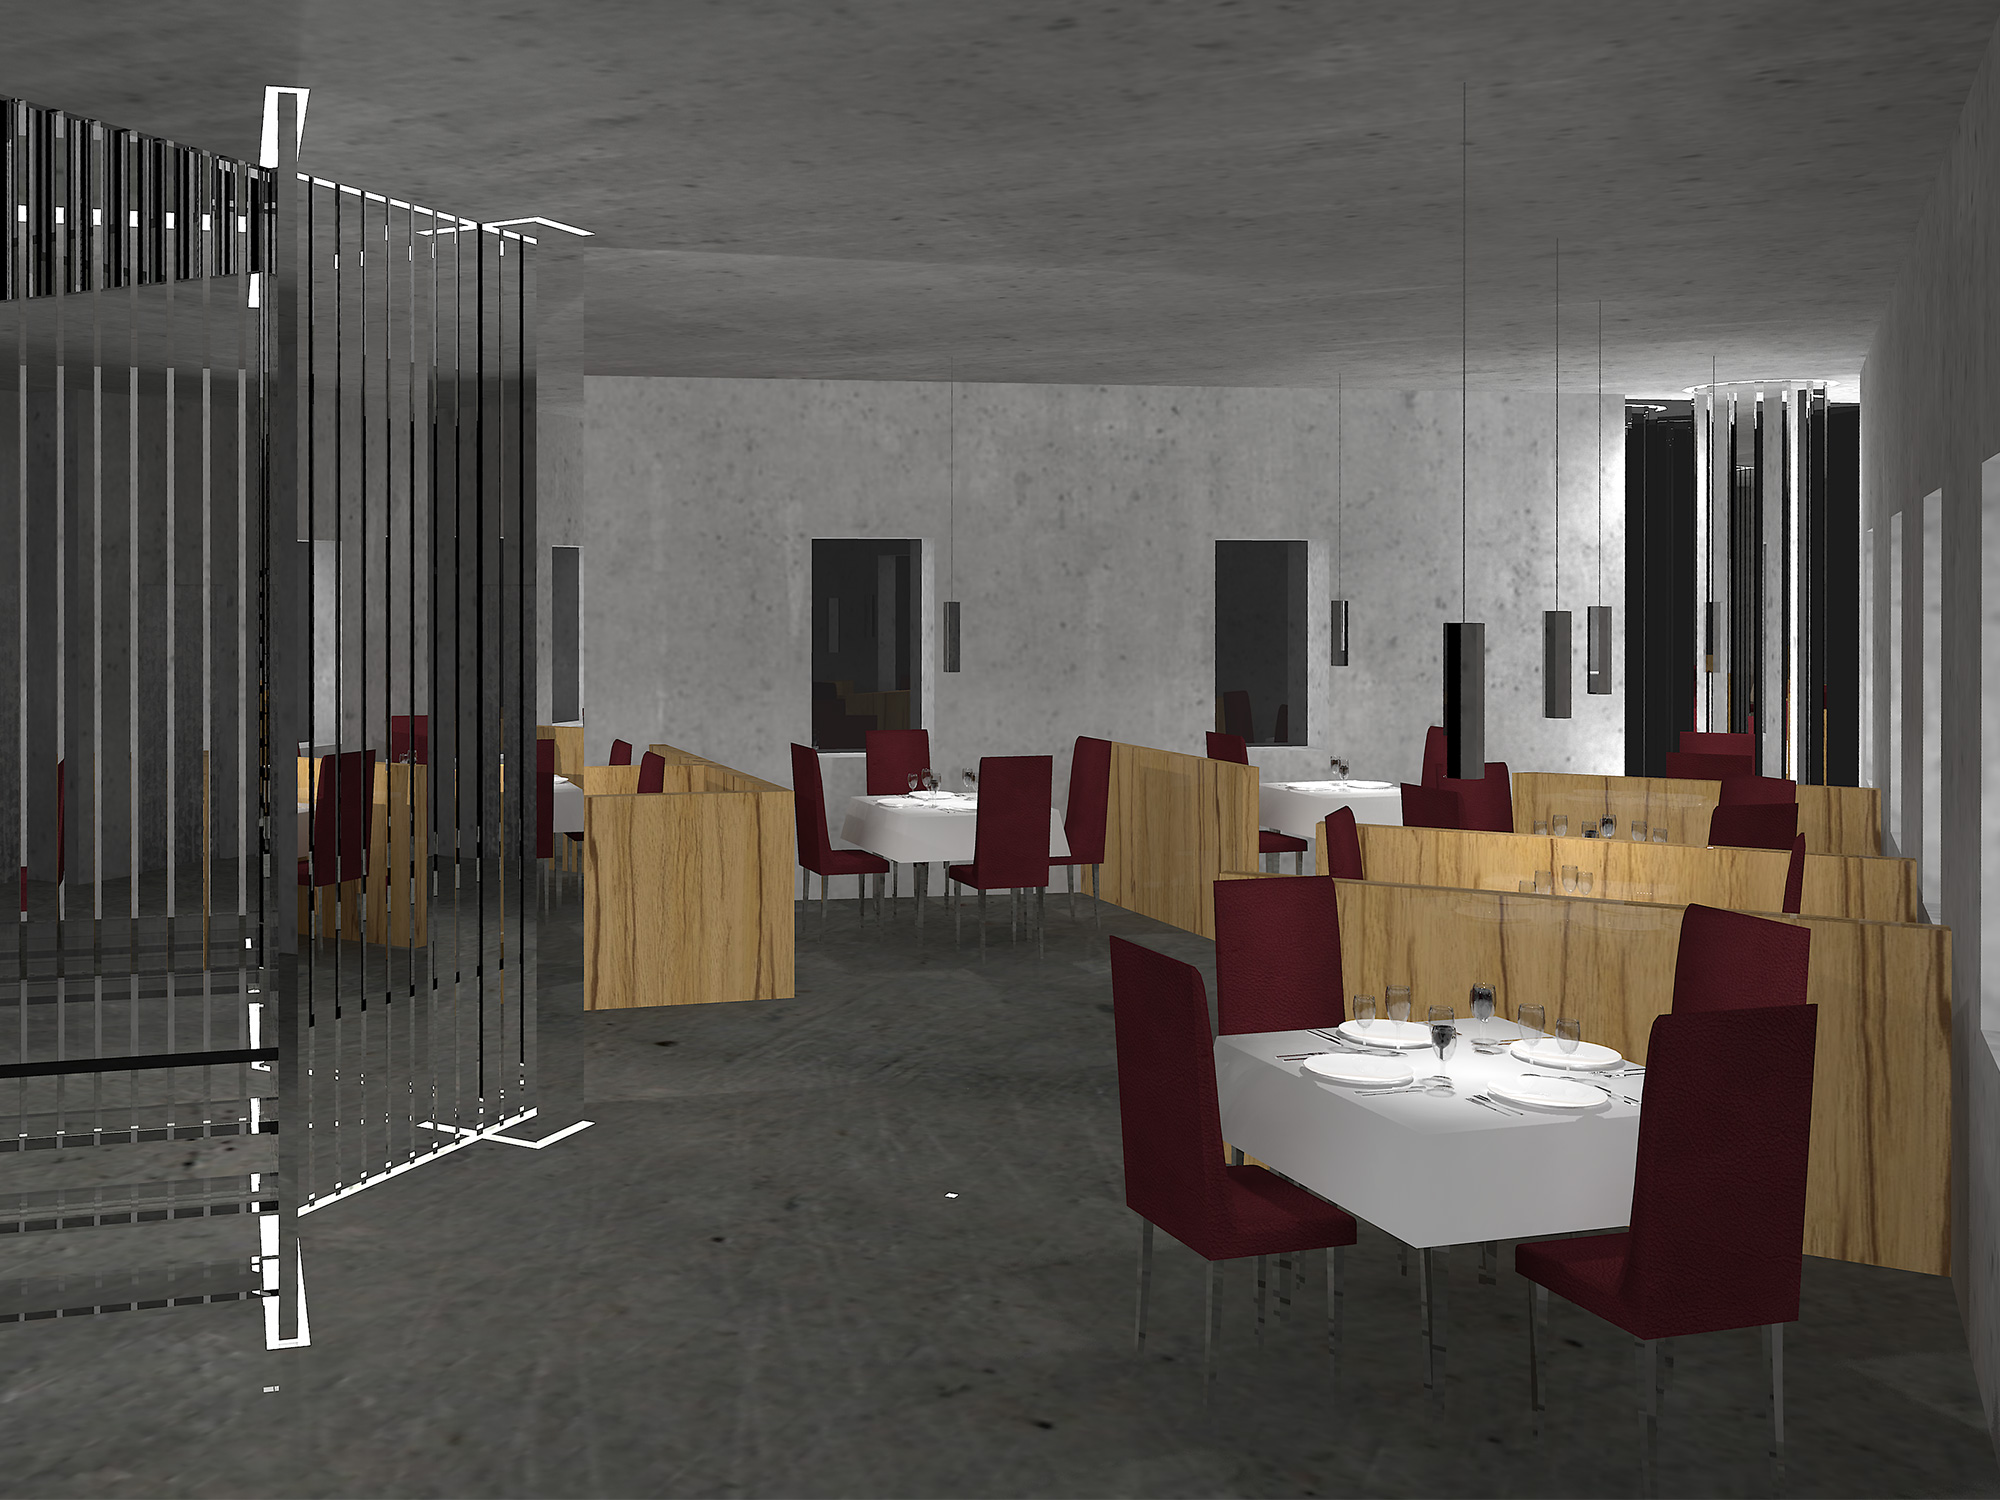 CGI modern art deco restaurant entrance with concrete walls, oak partitions, glass staircase, chrome columns and oxblood leather seats